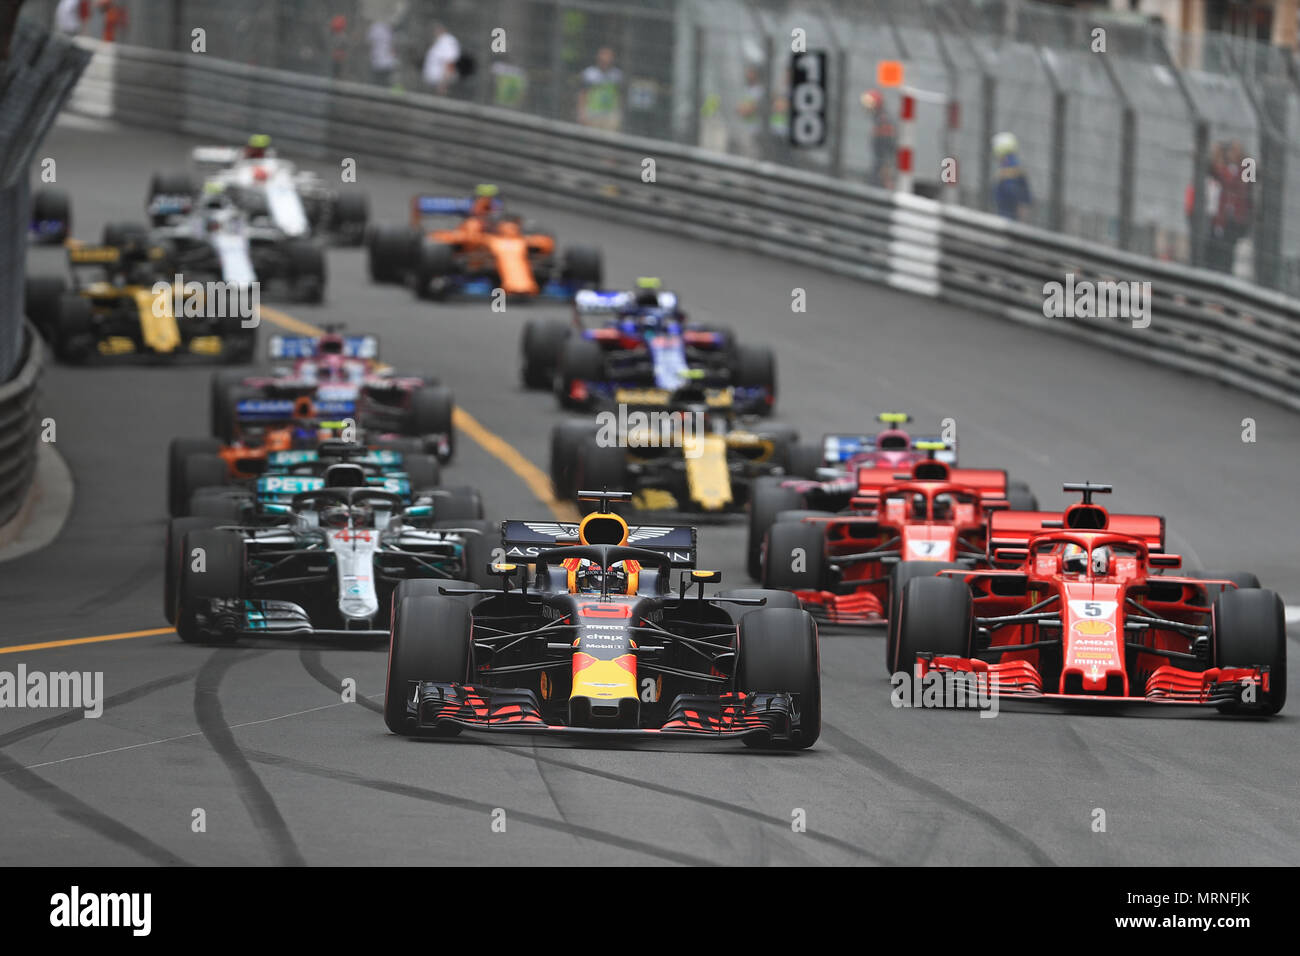 circuit de monaco monaco monte carlo 27th may 2018 monaco formula 1 grand prix race day. Black Bedroom Furniture Sets. Home Design Ideas